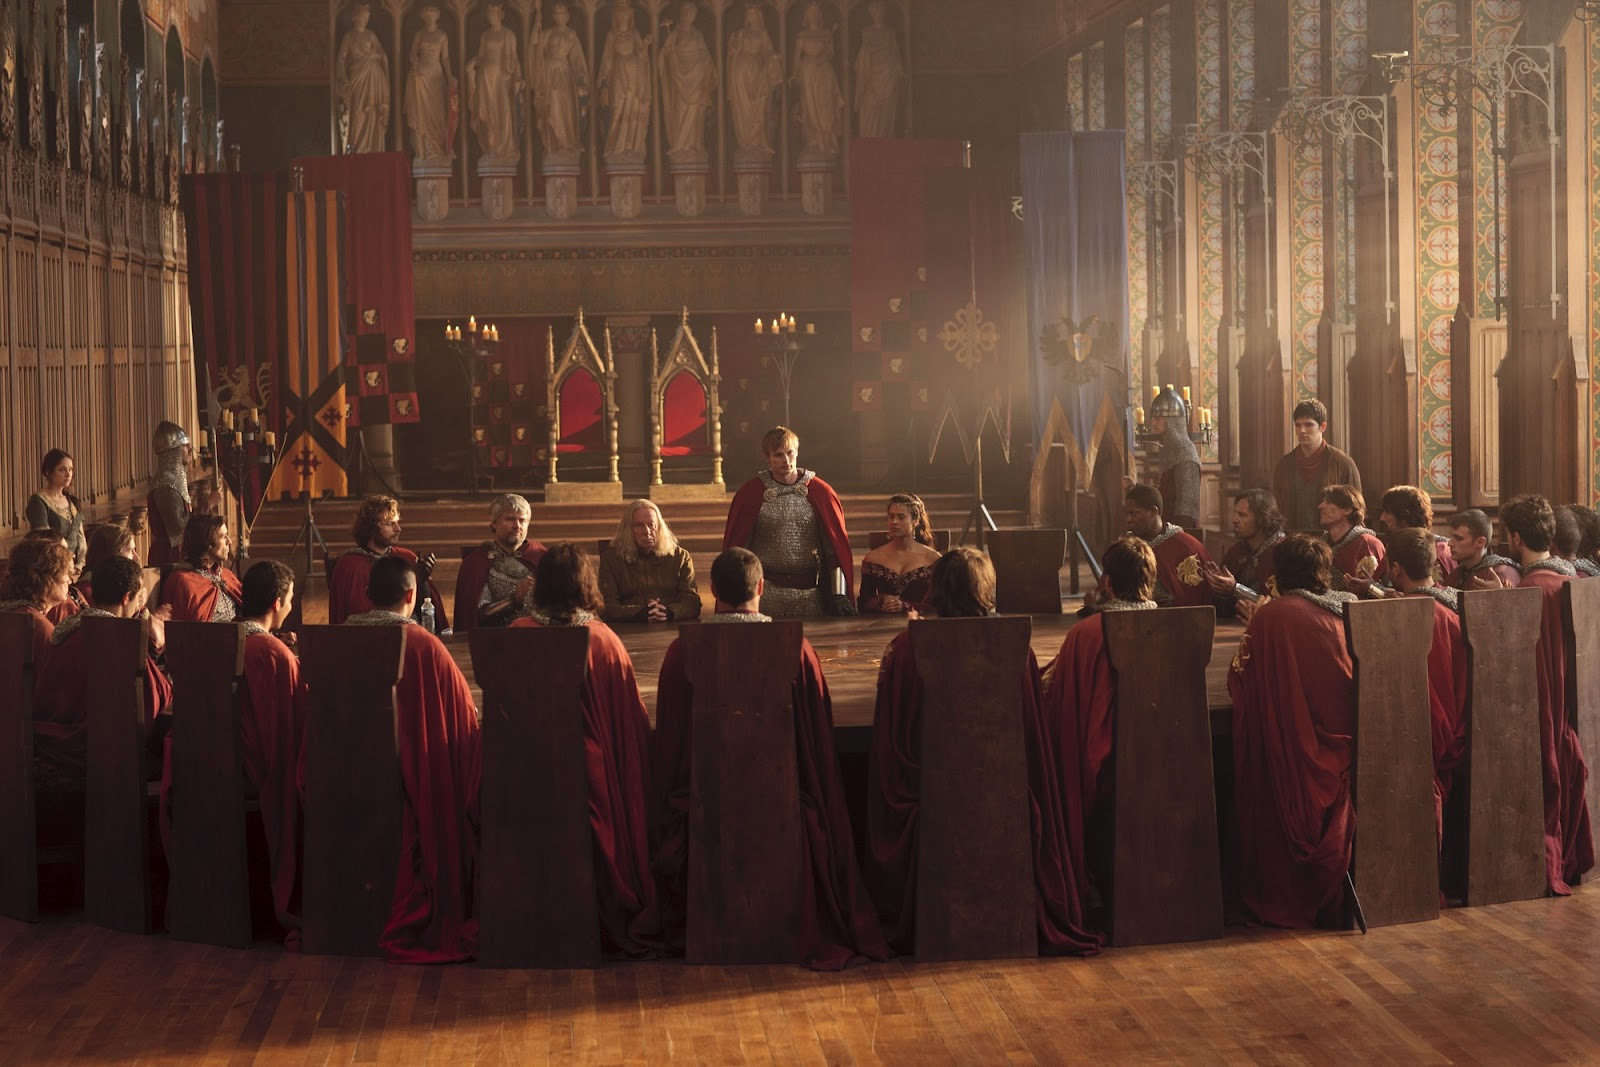 king arthur and his knights of the round table Most of the story material in knights of the round table is lifted from sir thomas adapted for his unfinished novel on king arthur and his noble knights.